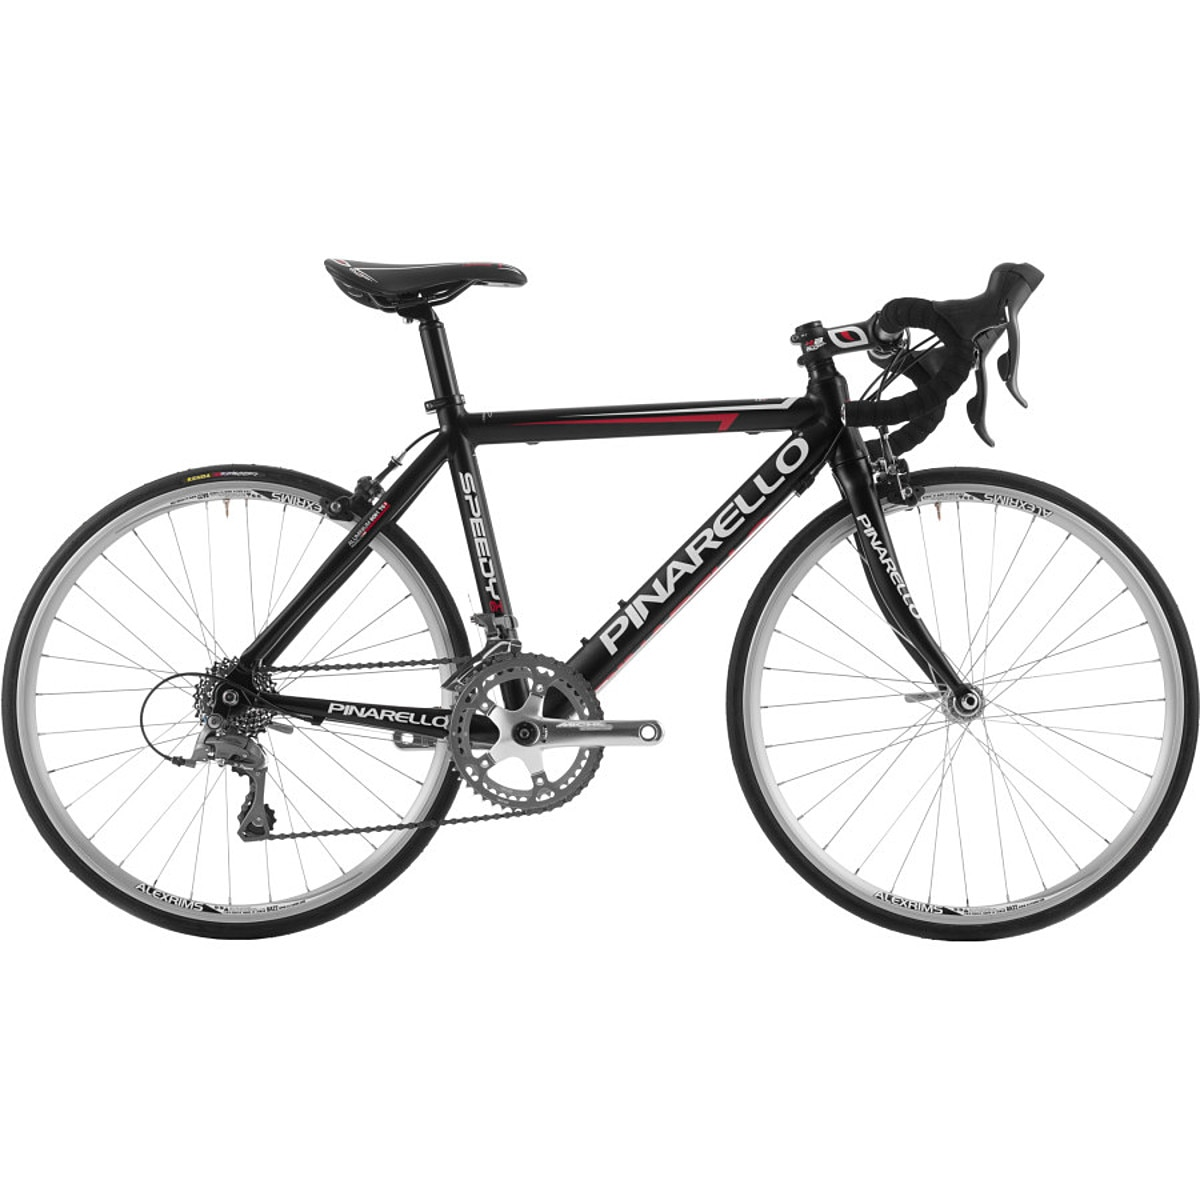 Pinarello Speedy Complete Kids Road Bike 2016 Competitive Cyclist